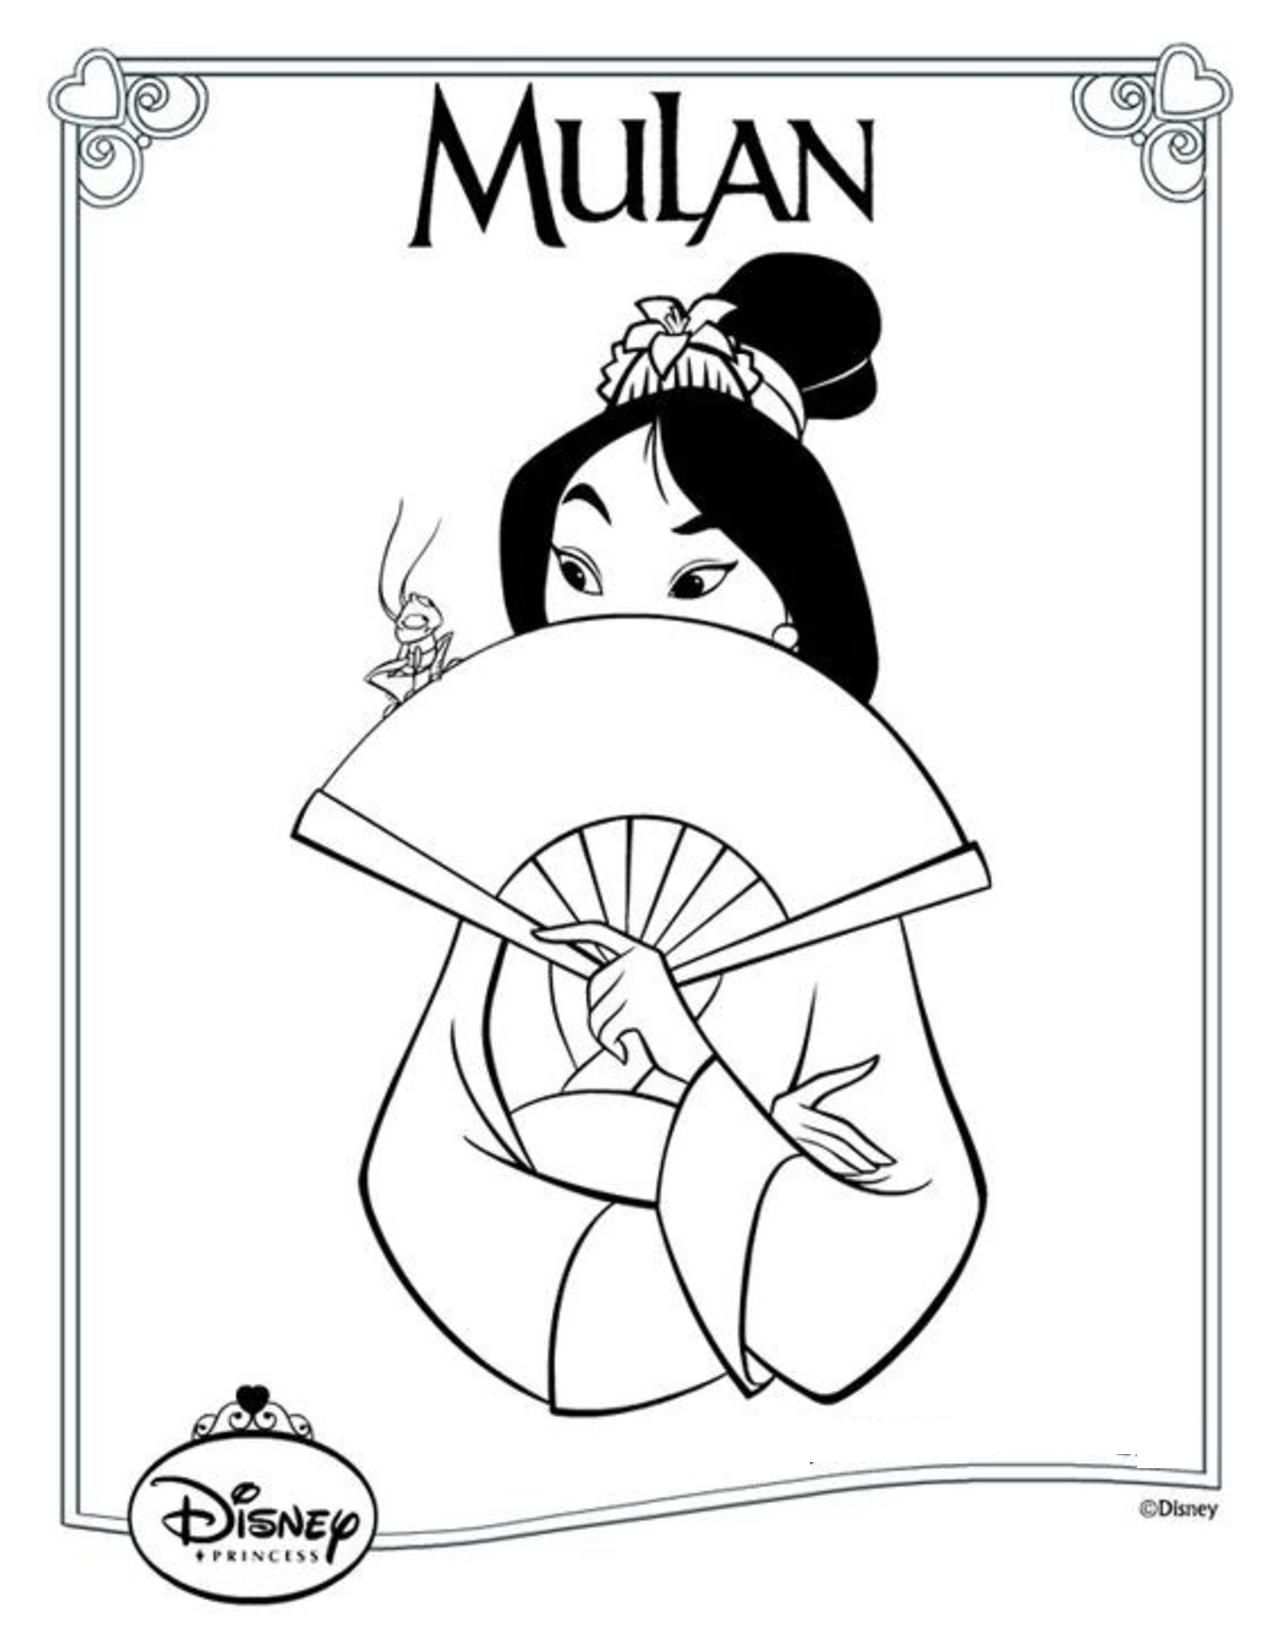 Pin By William Groeneveld On Disney Coloring Pages Movie Covers